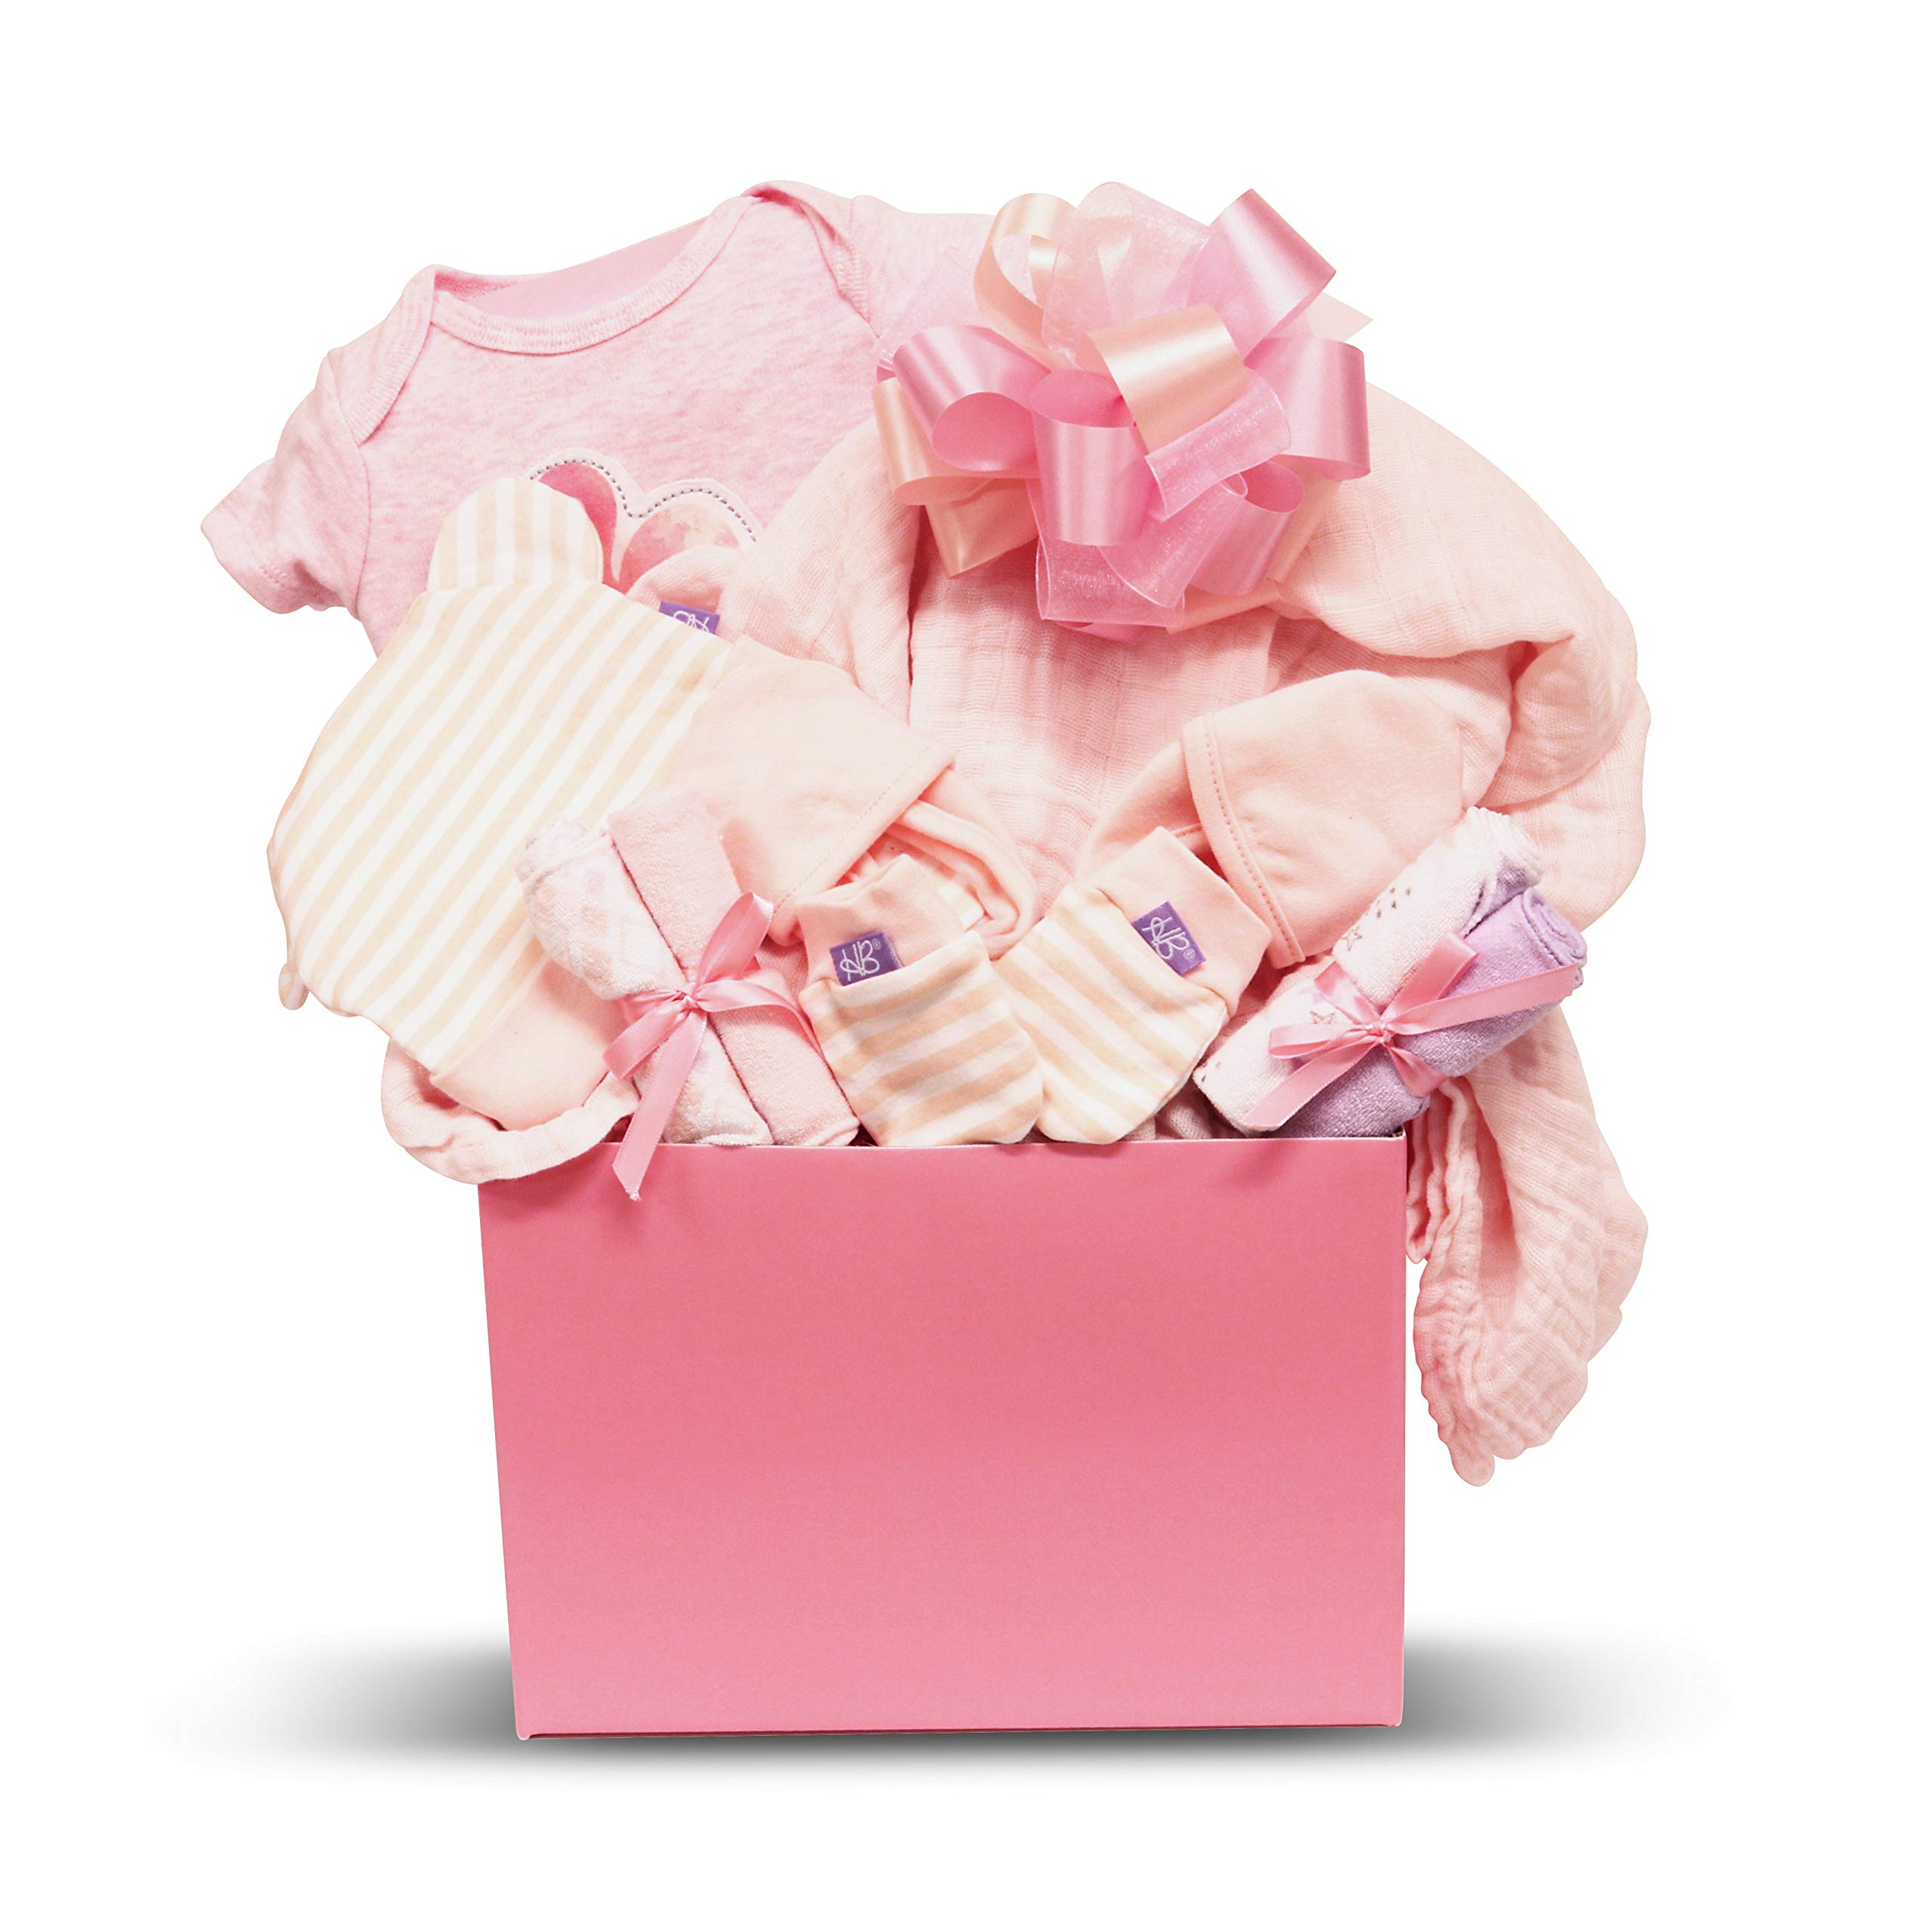 A Little Love Baby Girl Gift Basket with Cotton Onesie, Swaddling Blanket, Hat, Socks, Non-Scratch Mittens and Washclothes